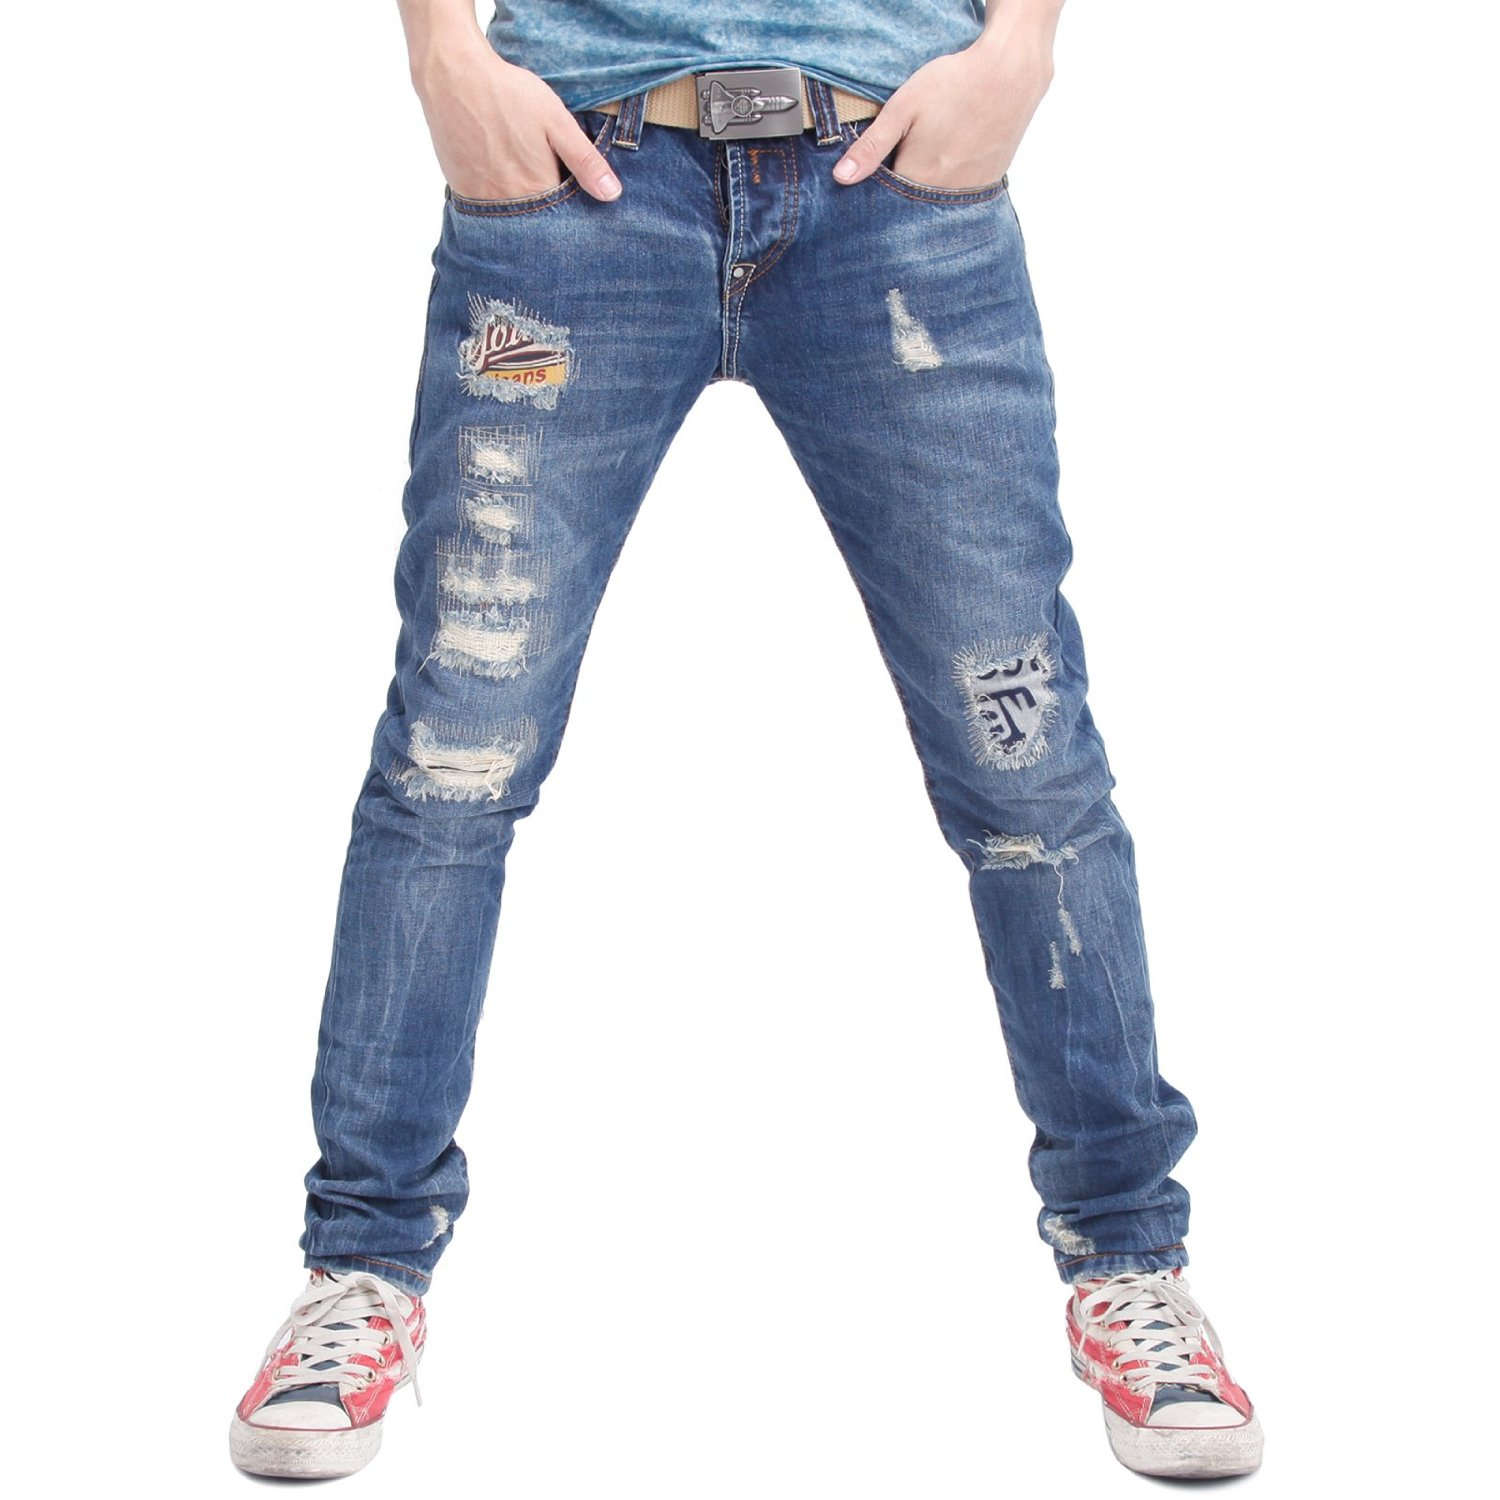 Man Ripped Jeans - Jeans Am